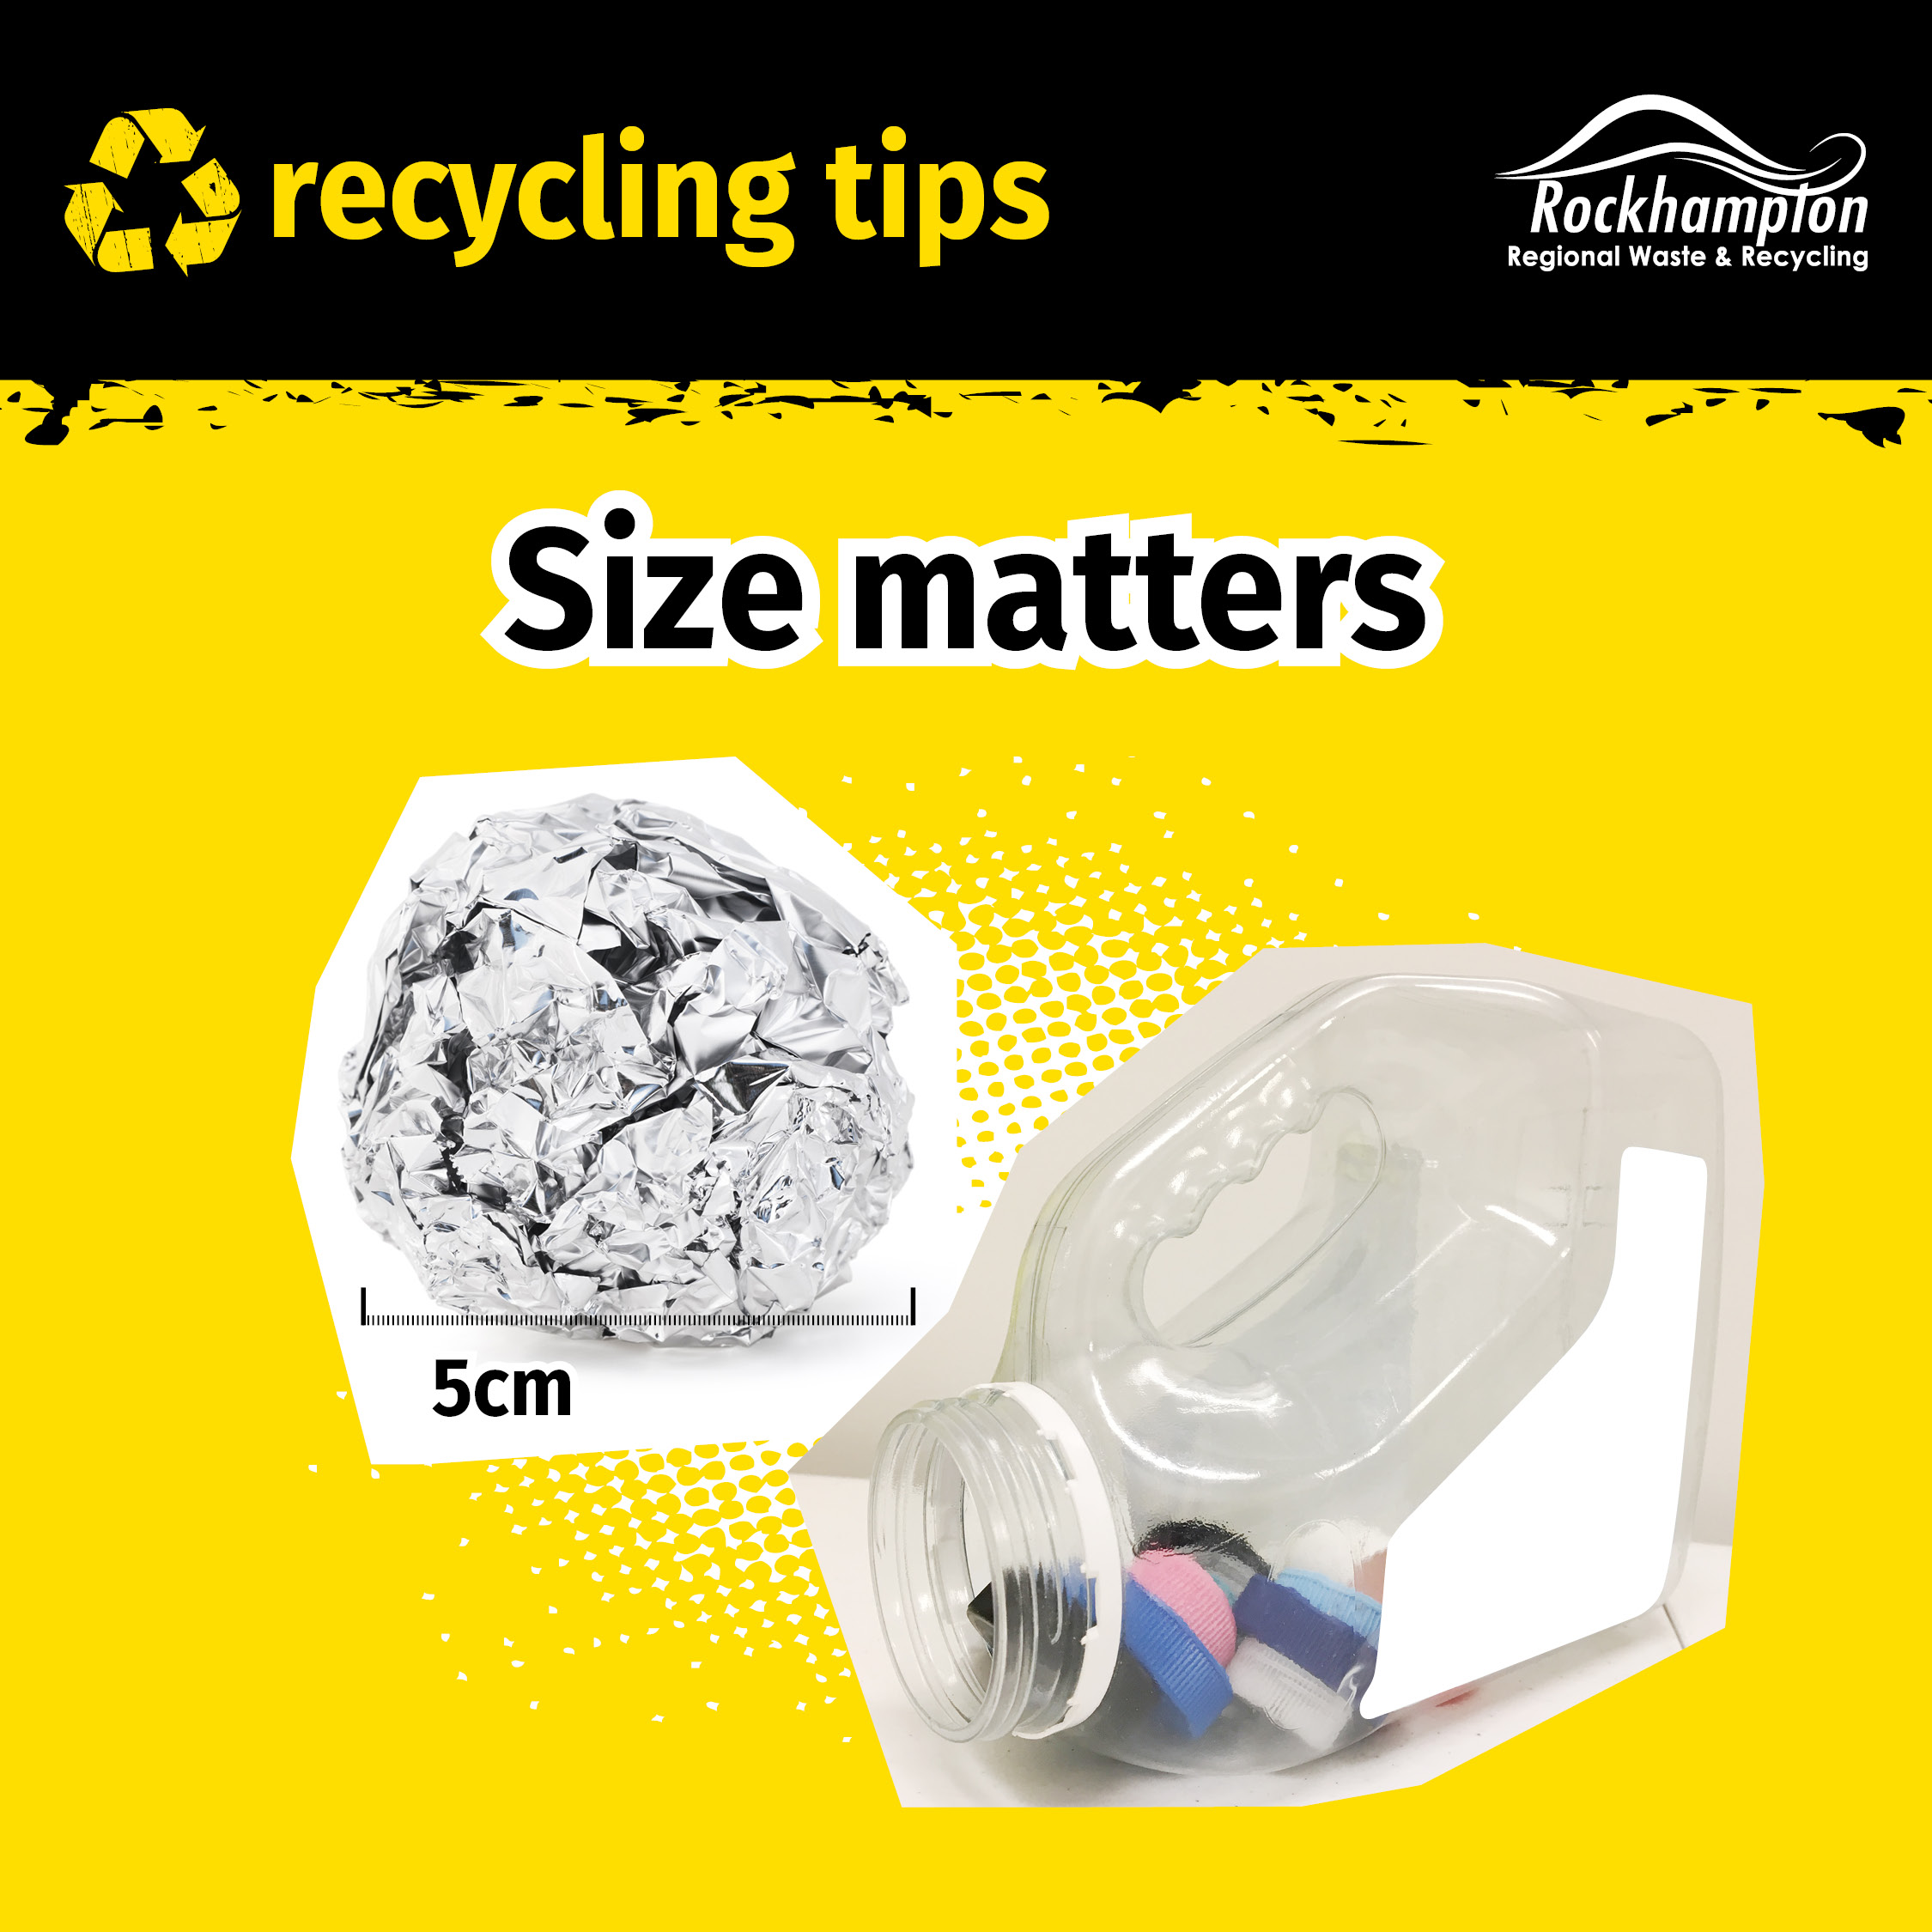 Recycling-Tips-5-Size-matters